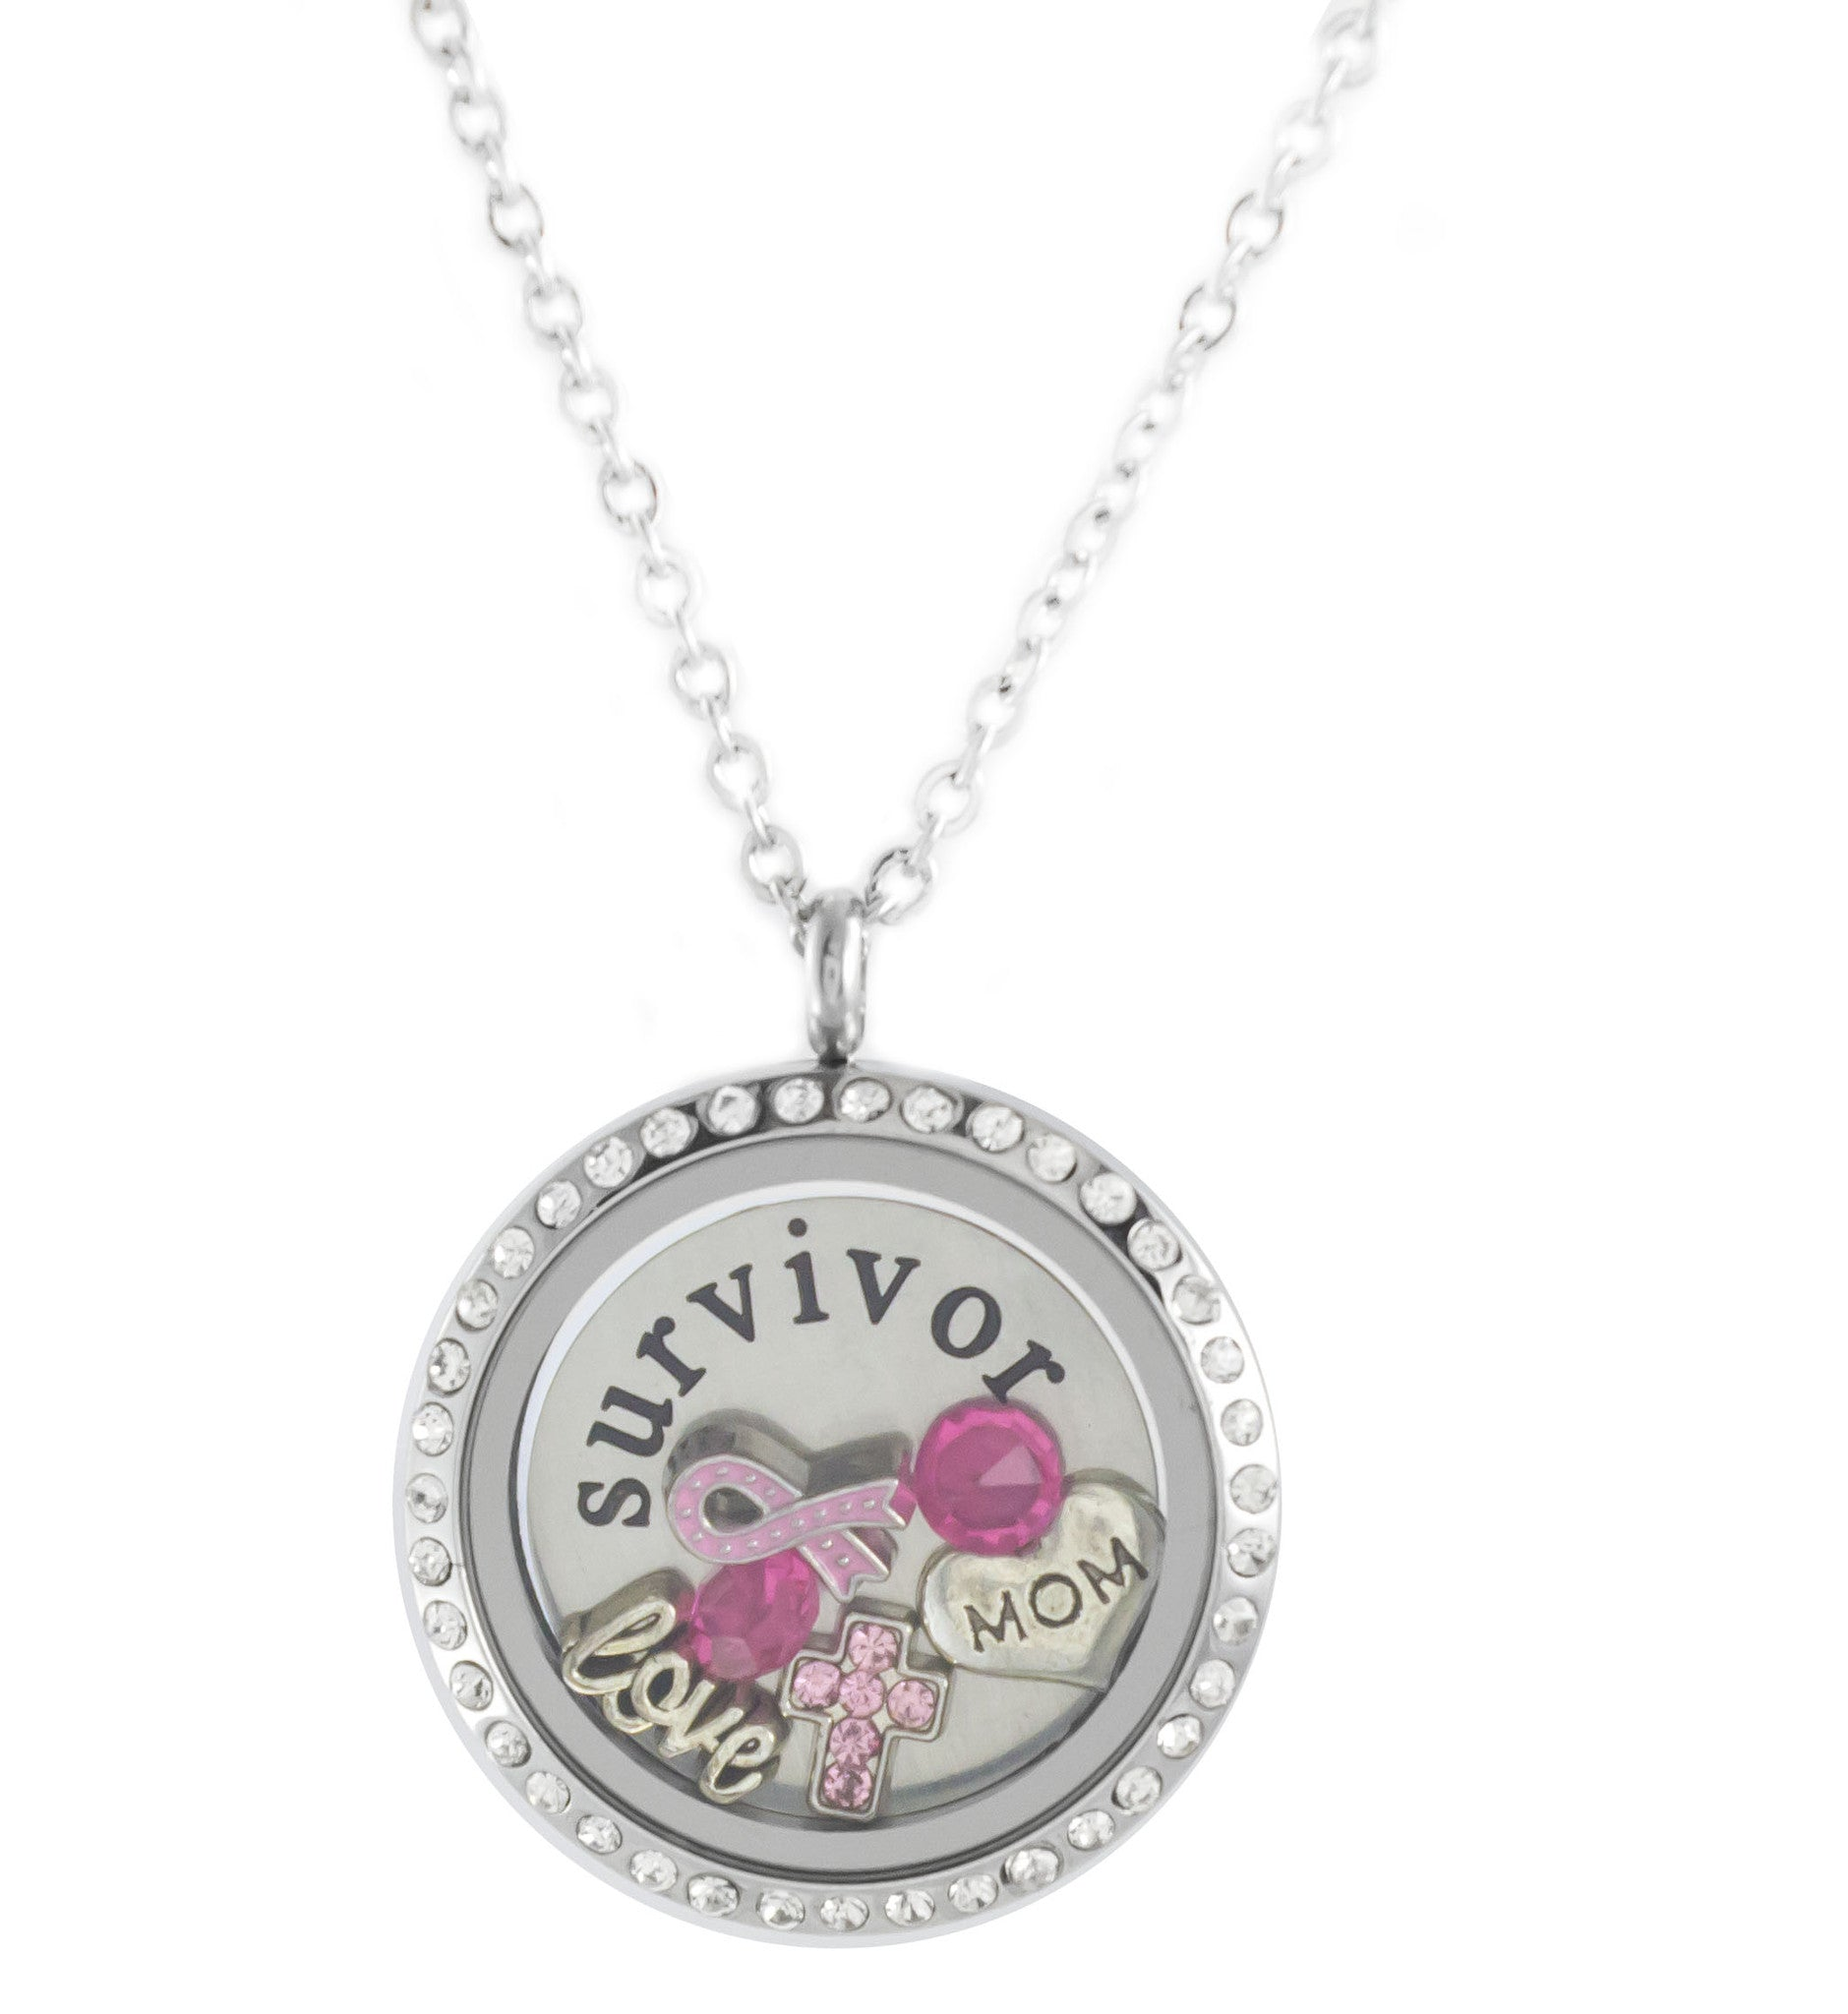 Cancer Awareness Floating Lockets